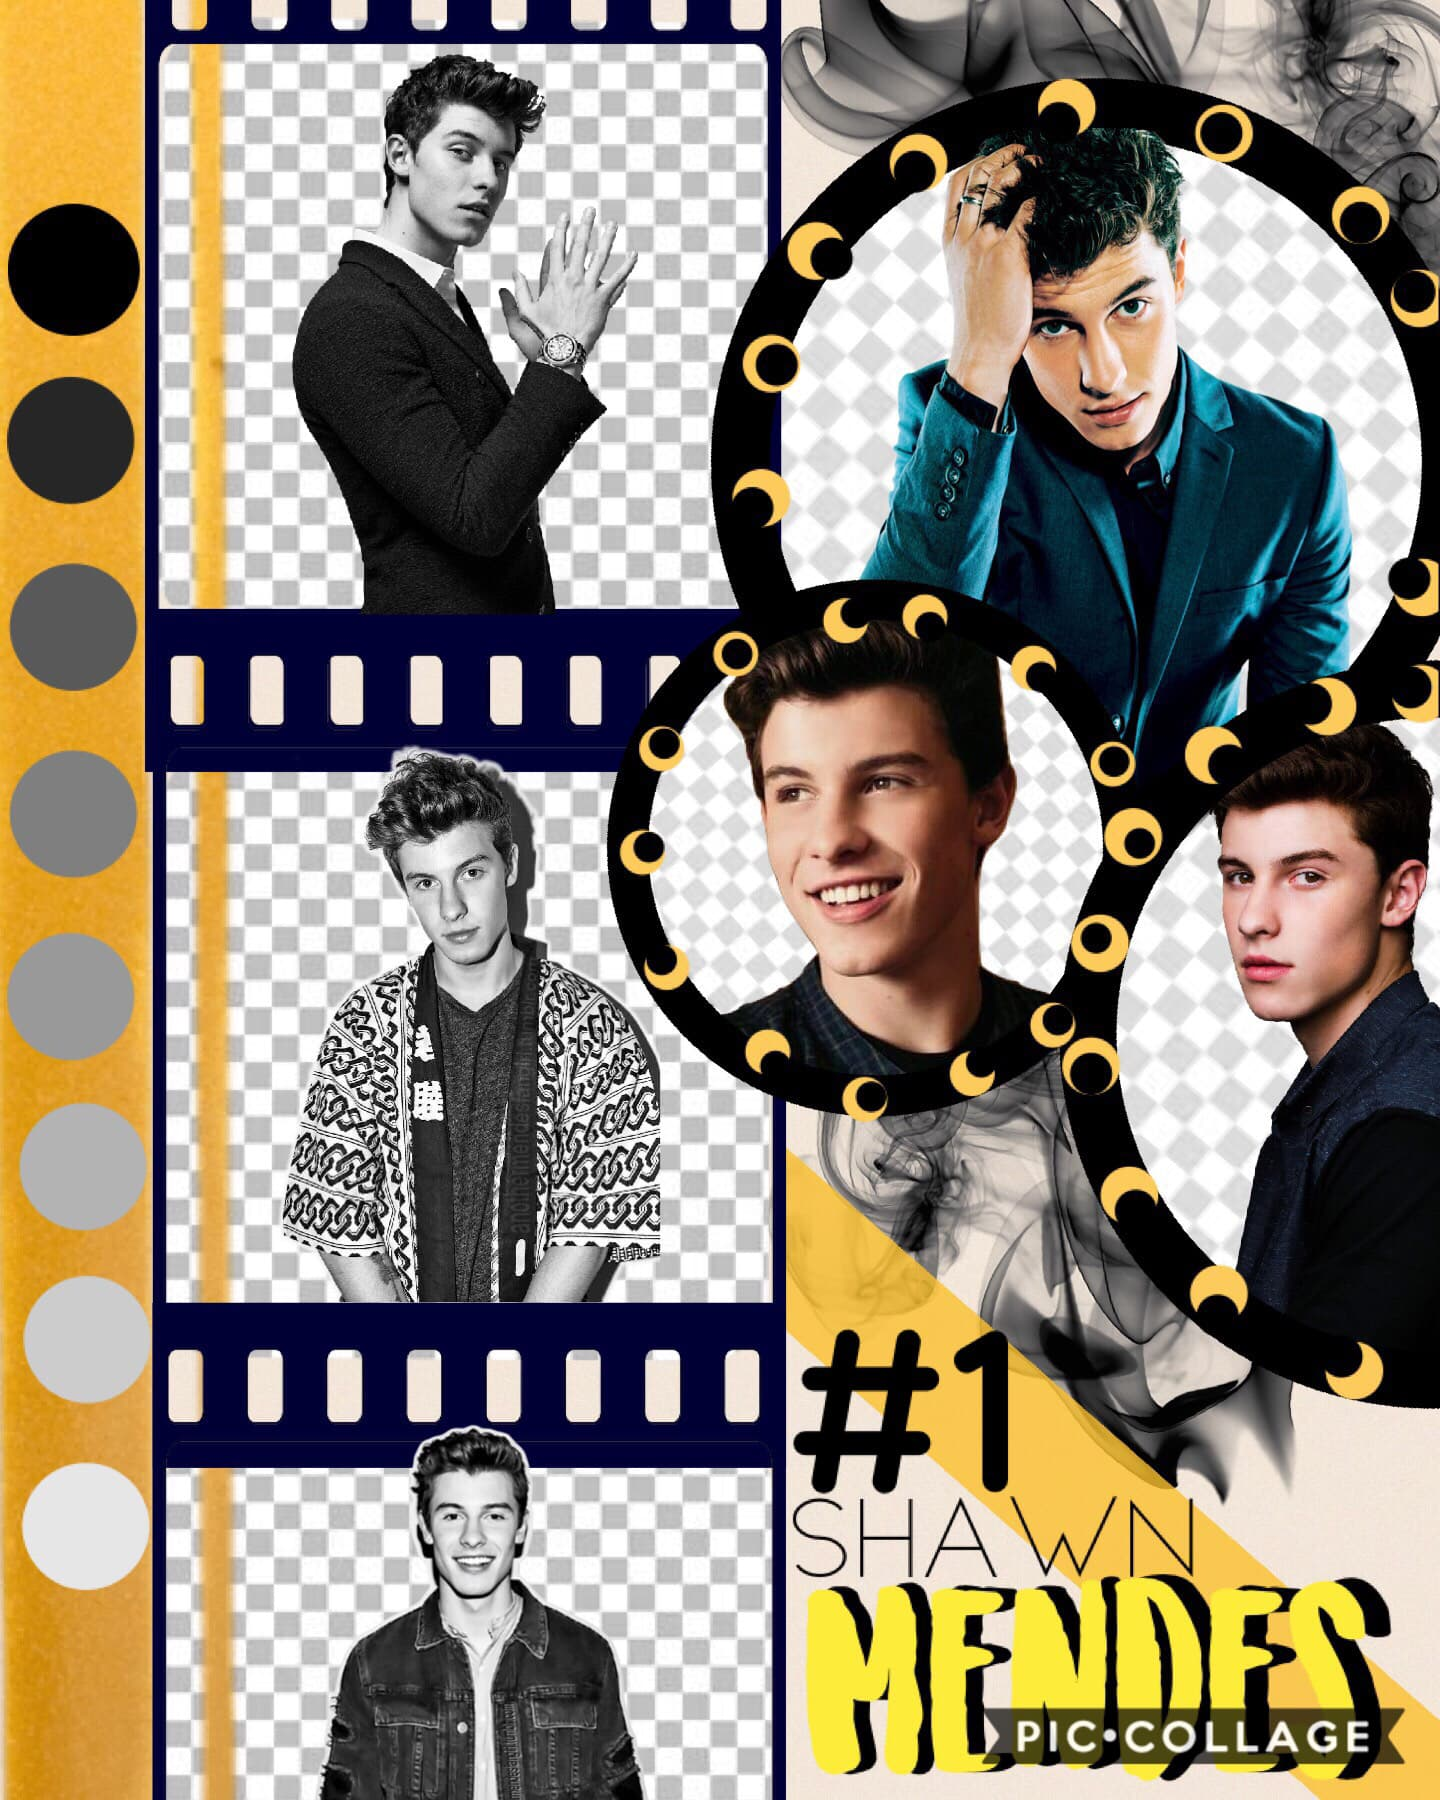 😺😺😺Tappy!!!😺😺😺 My idol!!! Fun fact Shawn mendes is in fact my idol !❤️😂😂😂so here's another edit of this adorable hot person 😂😂😂😂 lemme know what you think in the comments or rate 1-10